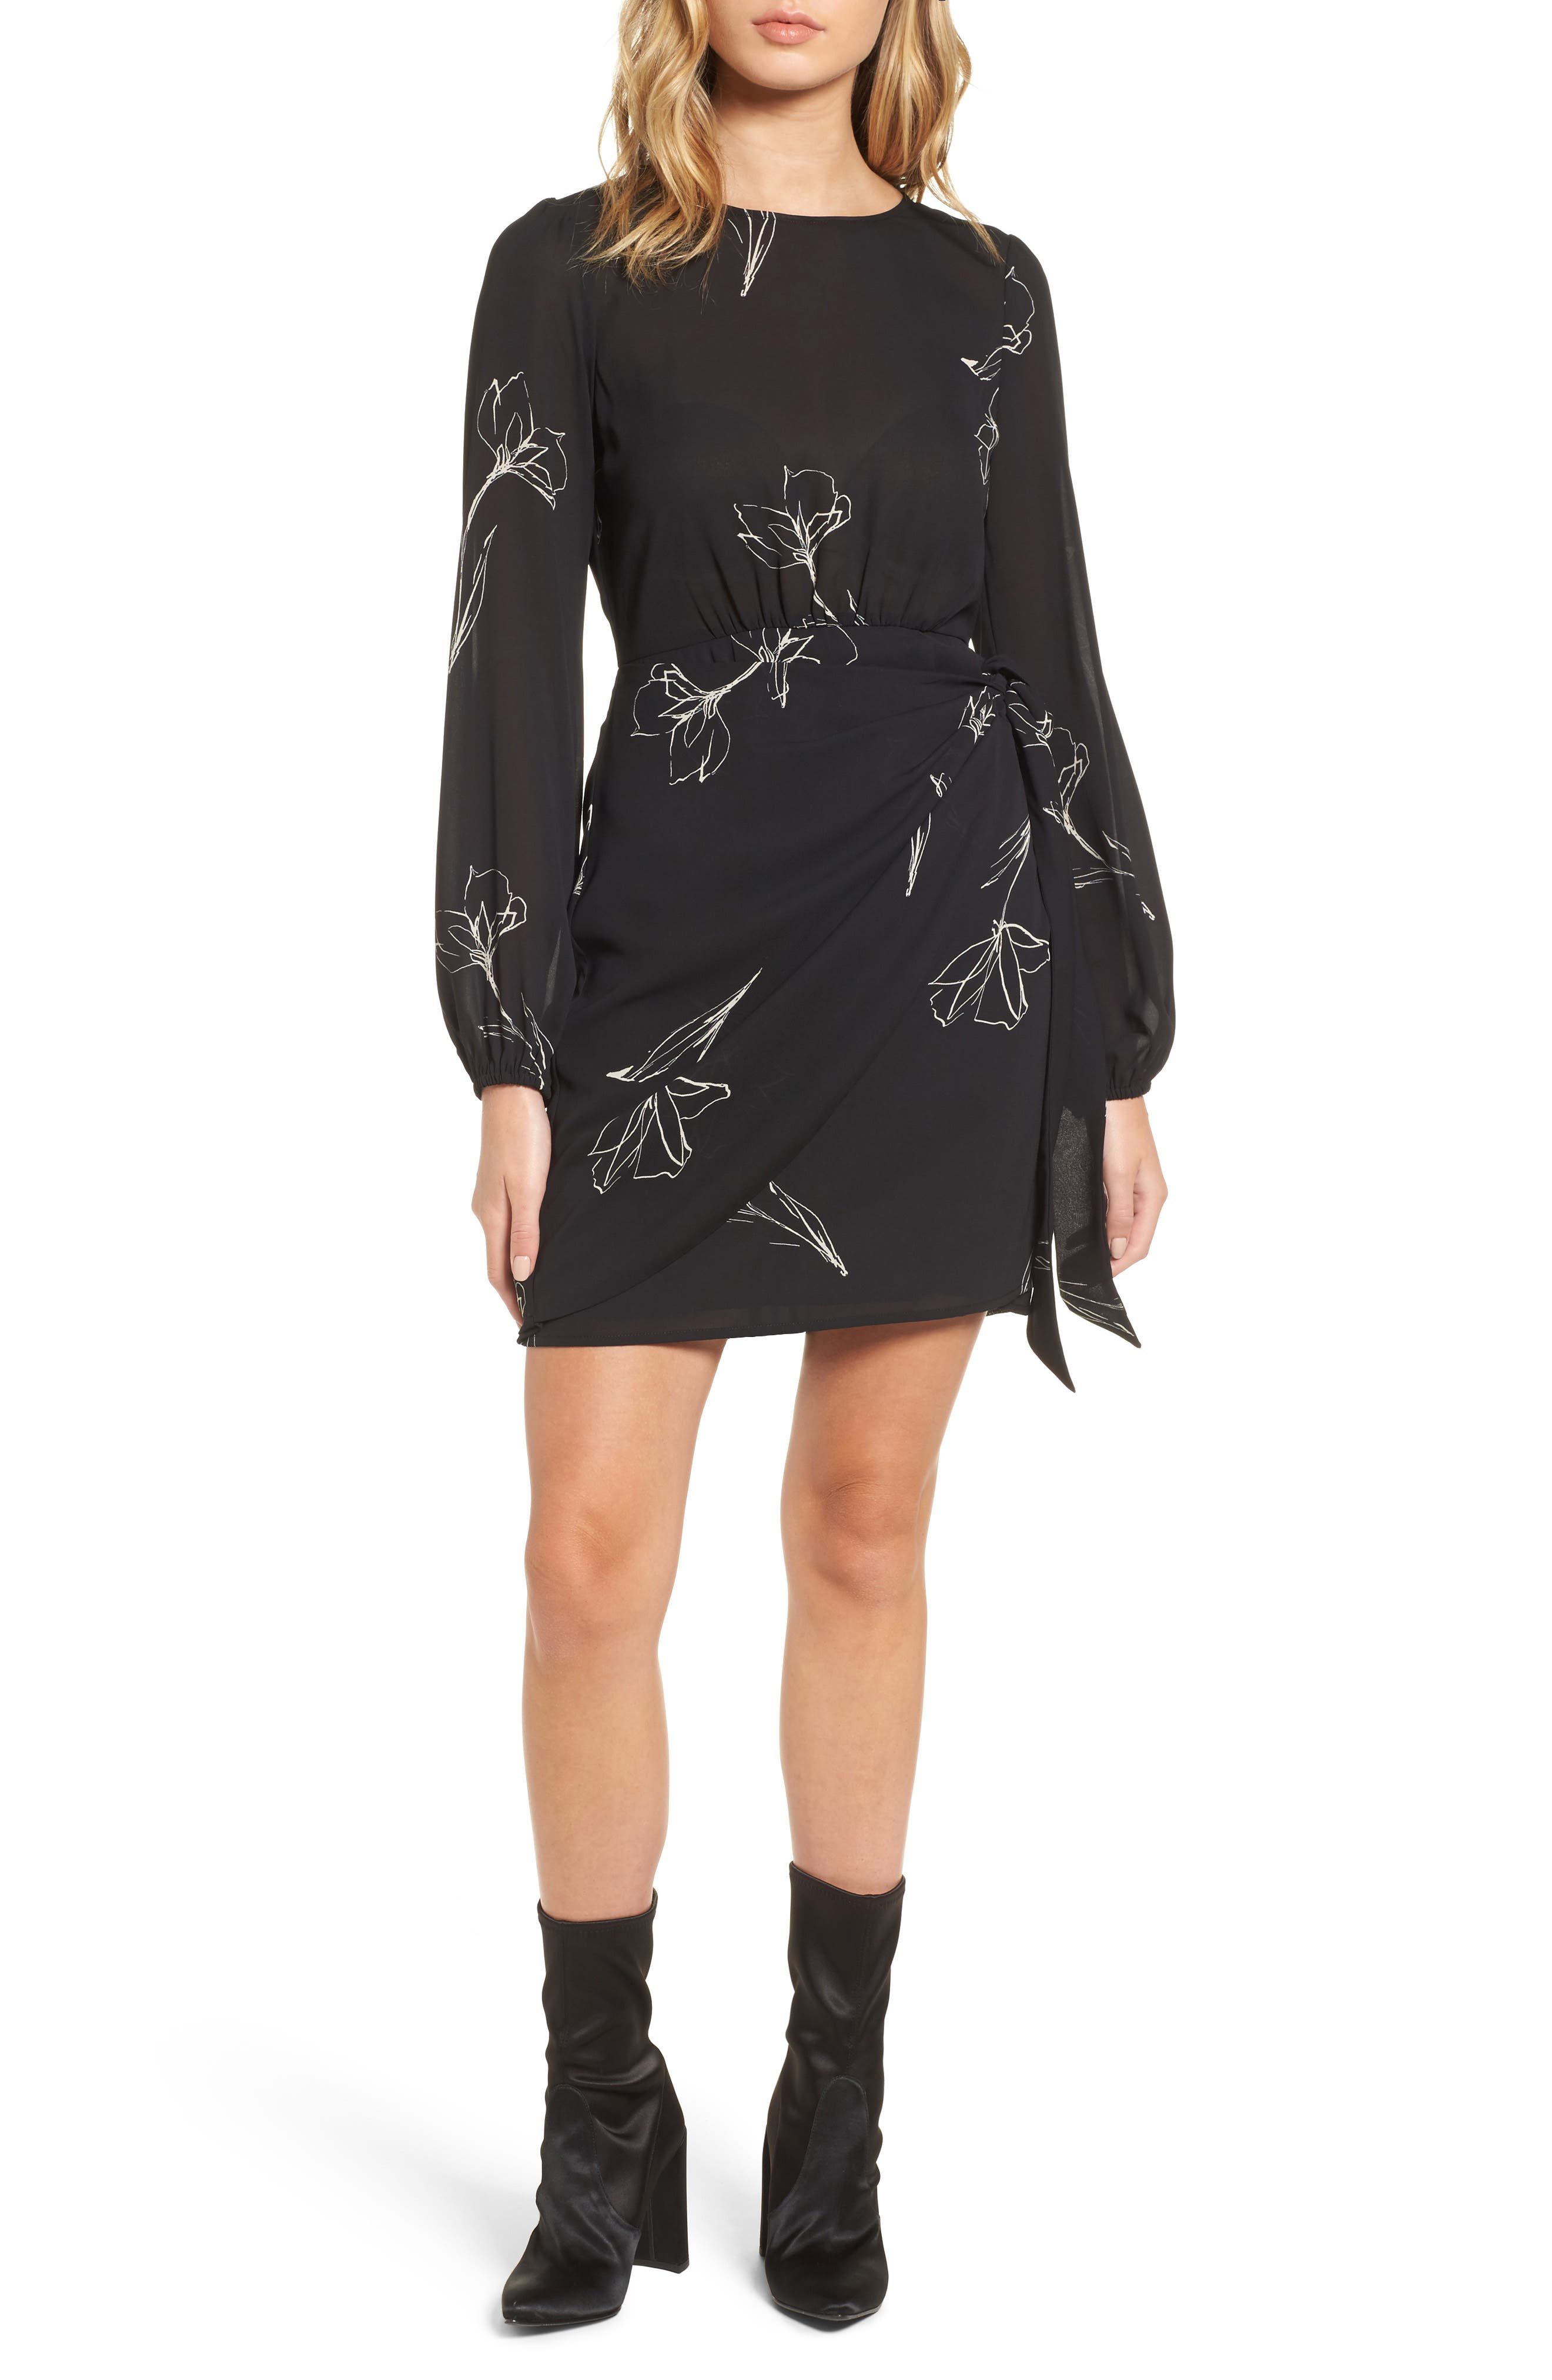 Alternate Image 1 Selected - ASTR the Label Tie Skirt Dress